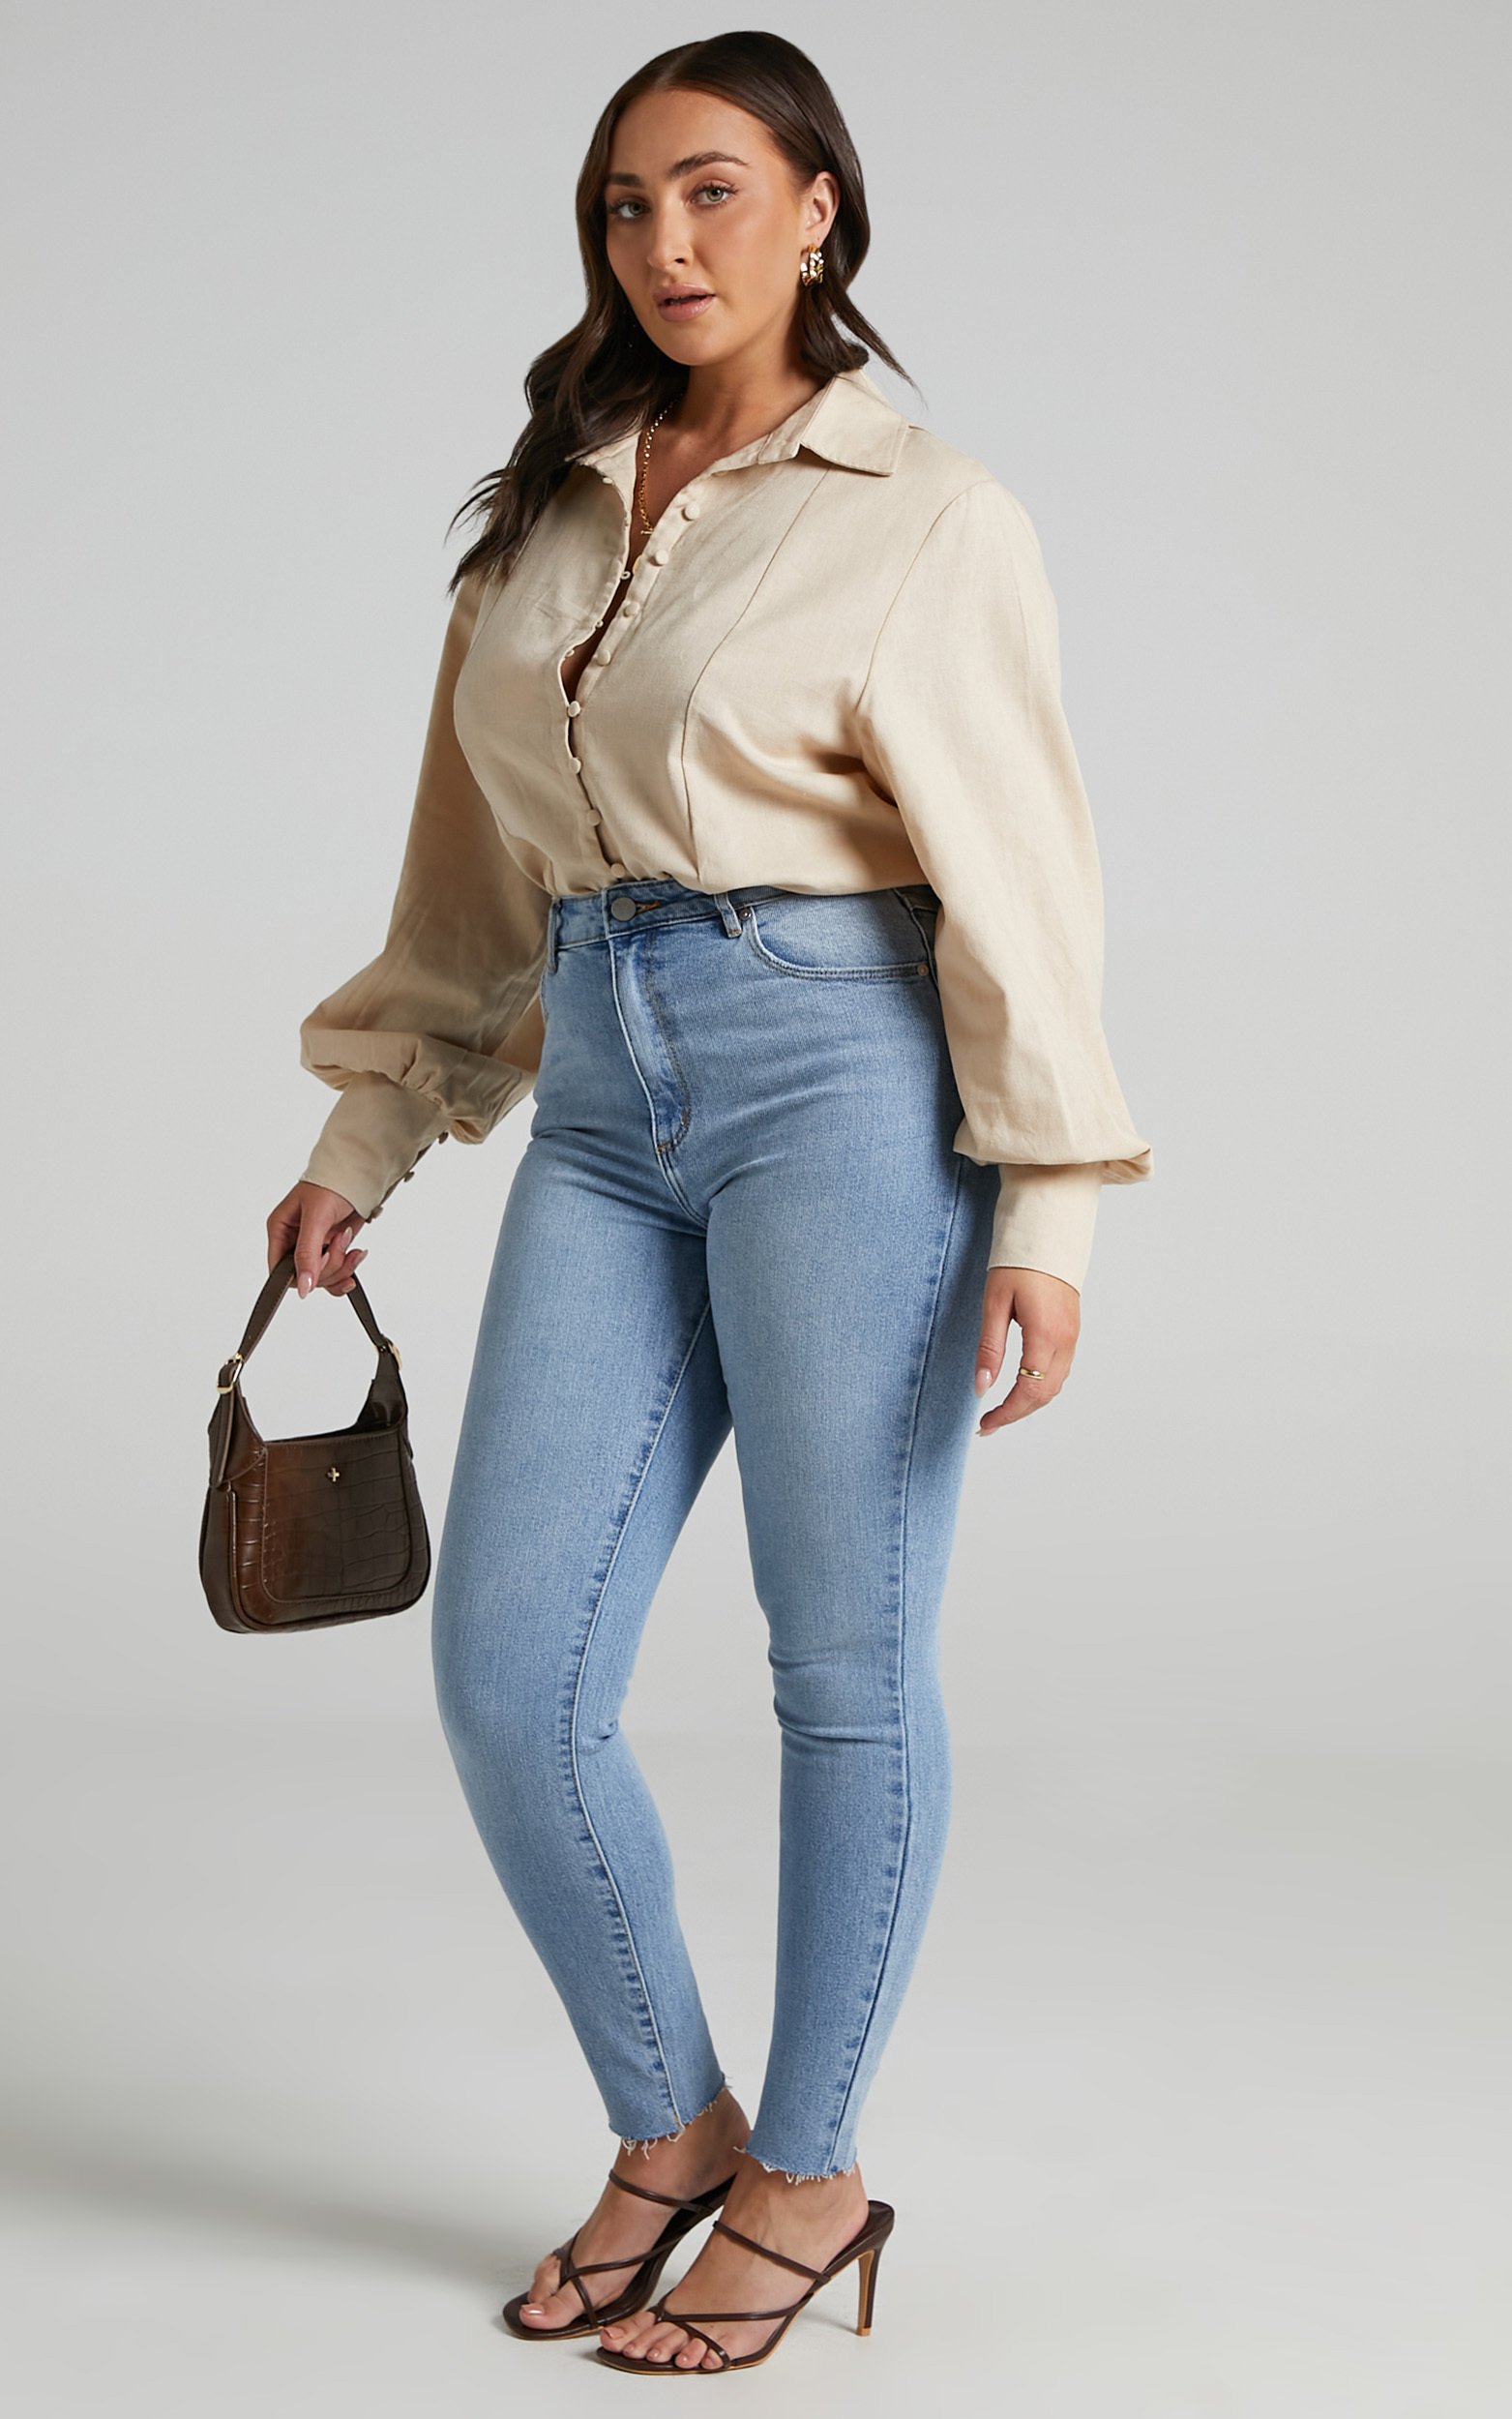 Abrand - A High Skinny Ankle Basher Jean in Ashley - 06, BLU1, hi-res image number null